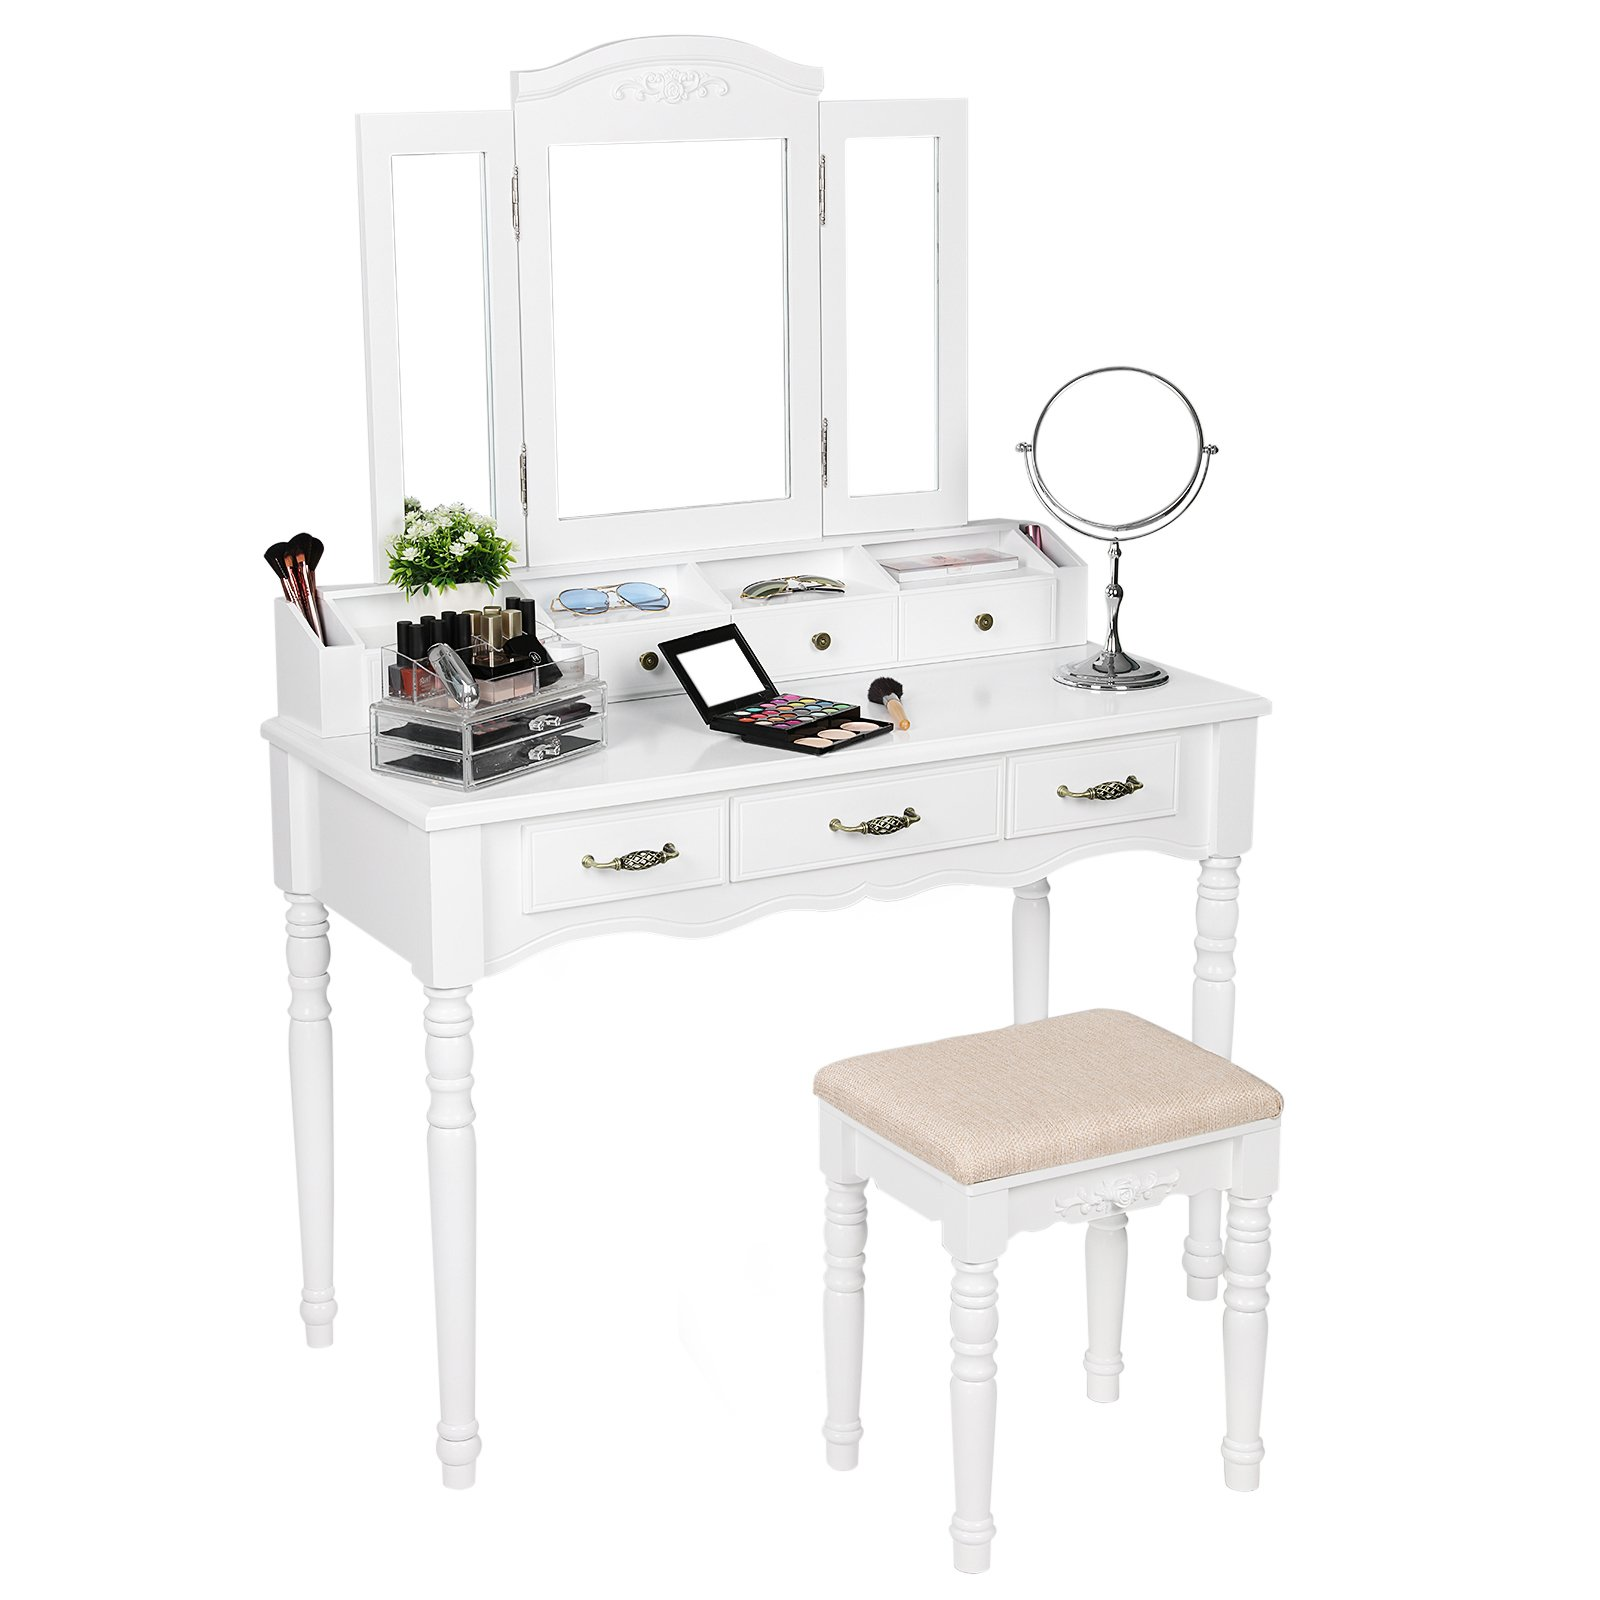 SONGMICS 7 Drawers Vanity Table Set with Tri-folding Mirror 6 Organizers Makeup Dressing Table with Cushioned Stool White URDT06M